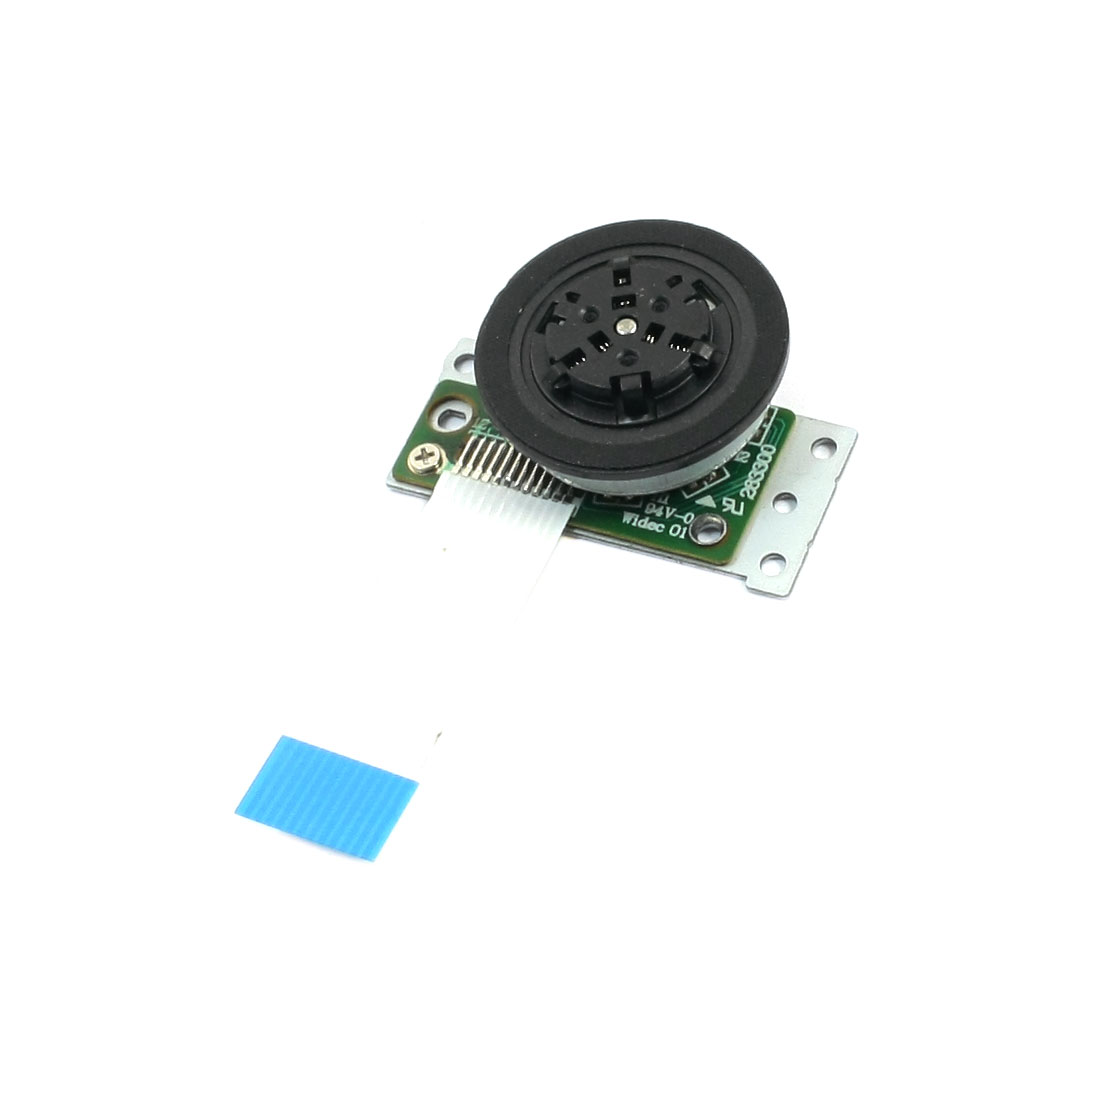 PSZ-90000 Replacement DVD VCD Drive Disc Brushless Motor Engine Repair Part for PS/2 Slim